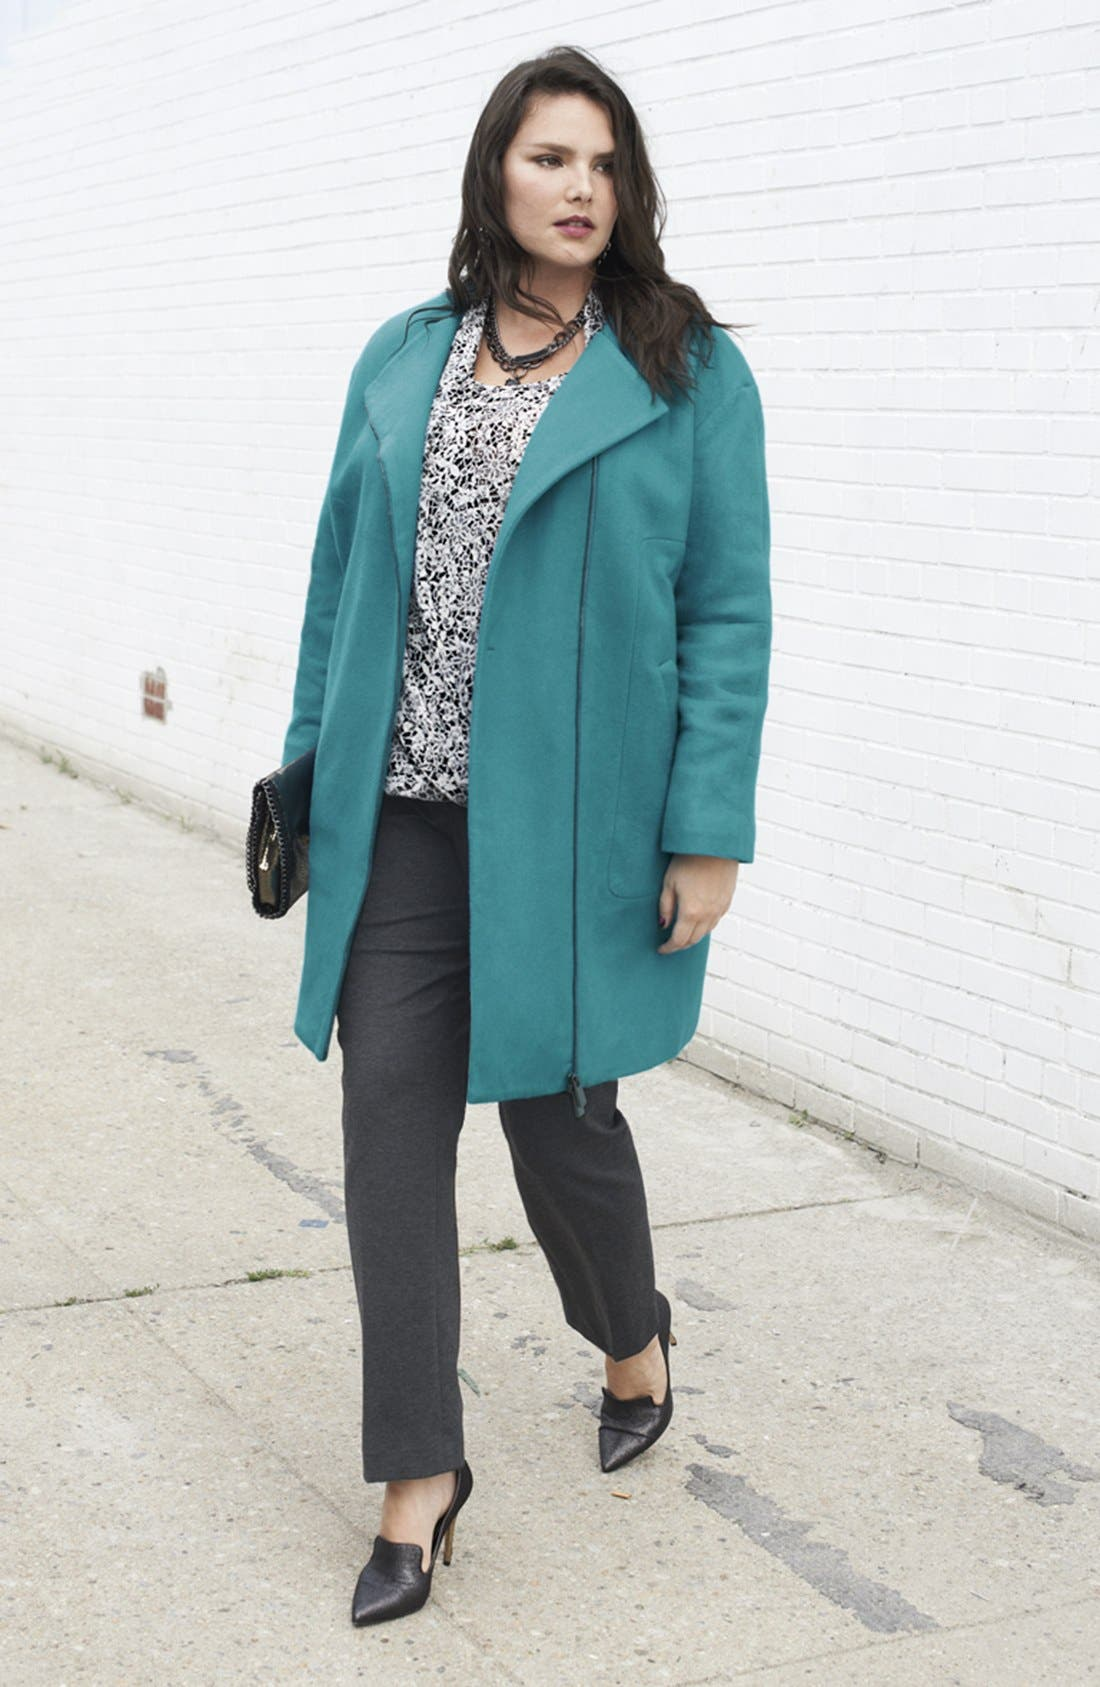 Main Image - Vince Camuto Flannel Topper, Blouse & Trousers